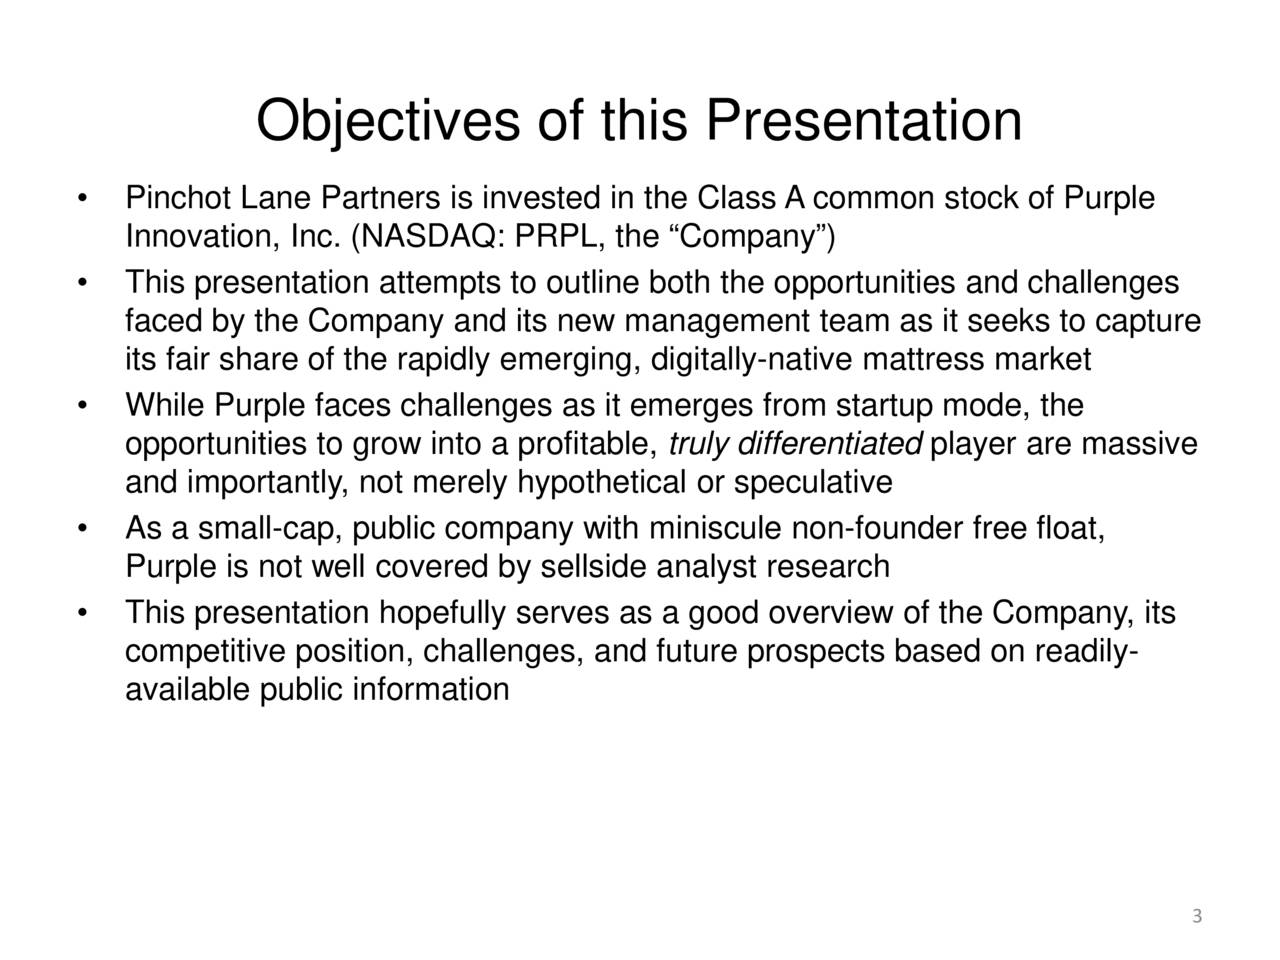 "• Pinchot Lane Partners is invested in the Class A common stock of Purple Innovation, Inc. (NASDAQ: PRPL, the ""Company"") • This presentation attempts to outline both the opportunities and challenges faced by the Company and its new management team as it seeks to capture its fair share of the rapidly emerging, digitally-native mattress market • While Purple faces challenges as it emerges from startup mode, the opportunities to grow into a profitable, truly differentiated player are massive and importantly, not merely hypothetical or speculative • As a small-cap, public company with miniscule non-founder free float, Purple is not well covered by sellside analyst research • This presentation hopefully serves as a good overview of the Company, its competitive position, challenges, and future prospects based on readily- available public information 3"